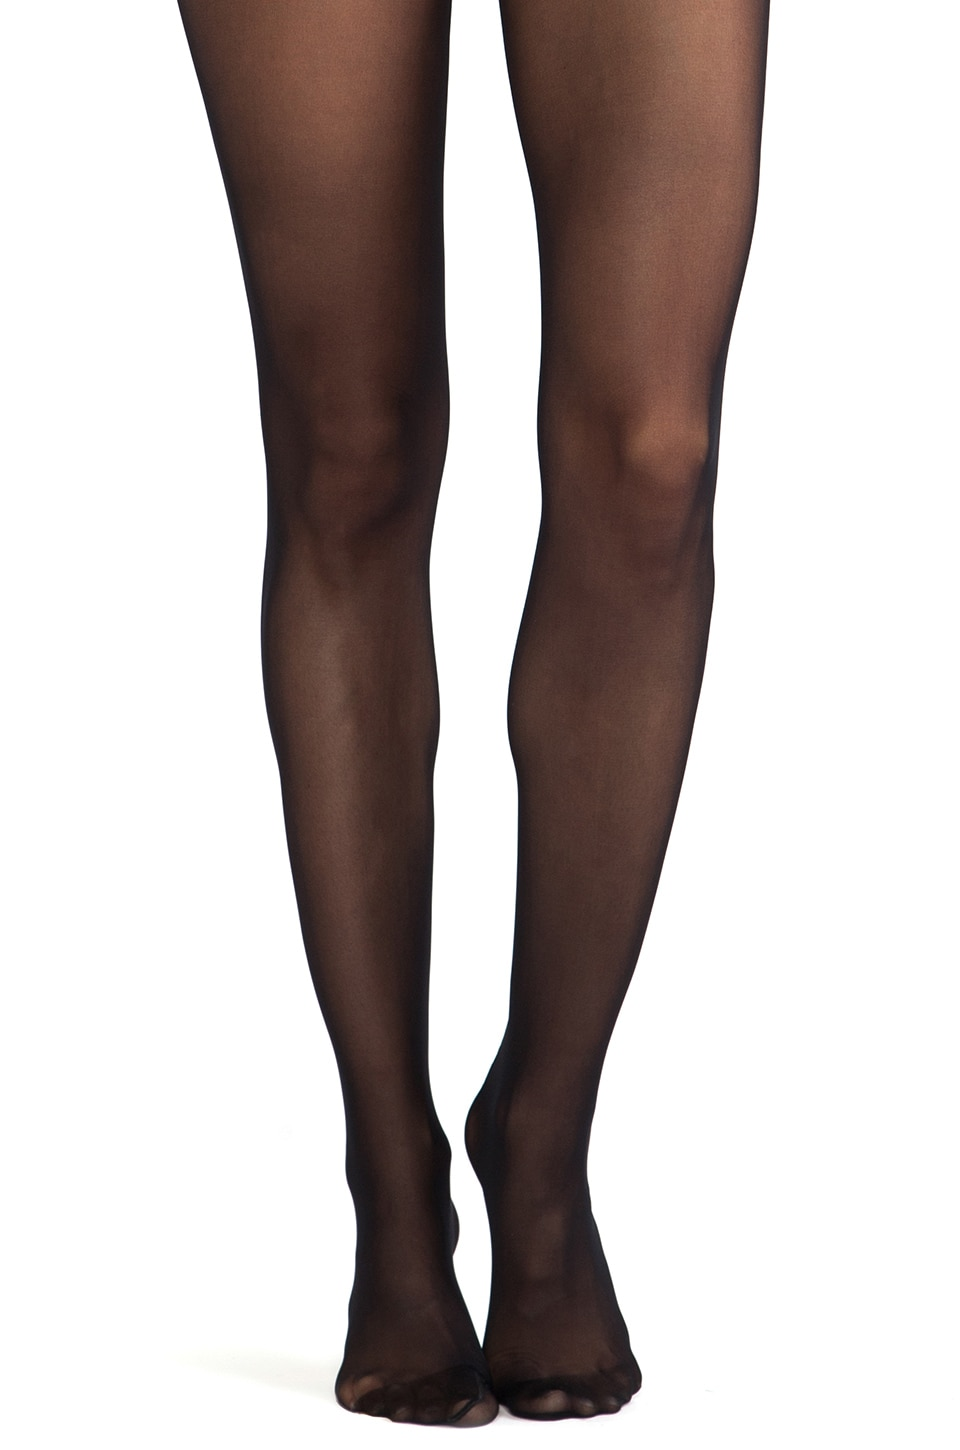 Wolford Fatal Lace 15 Seamless Tights in Black